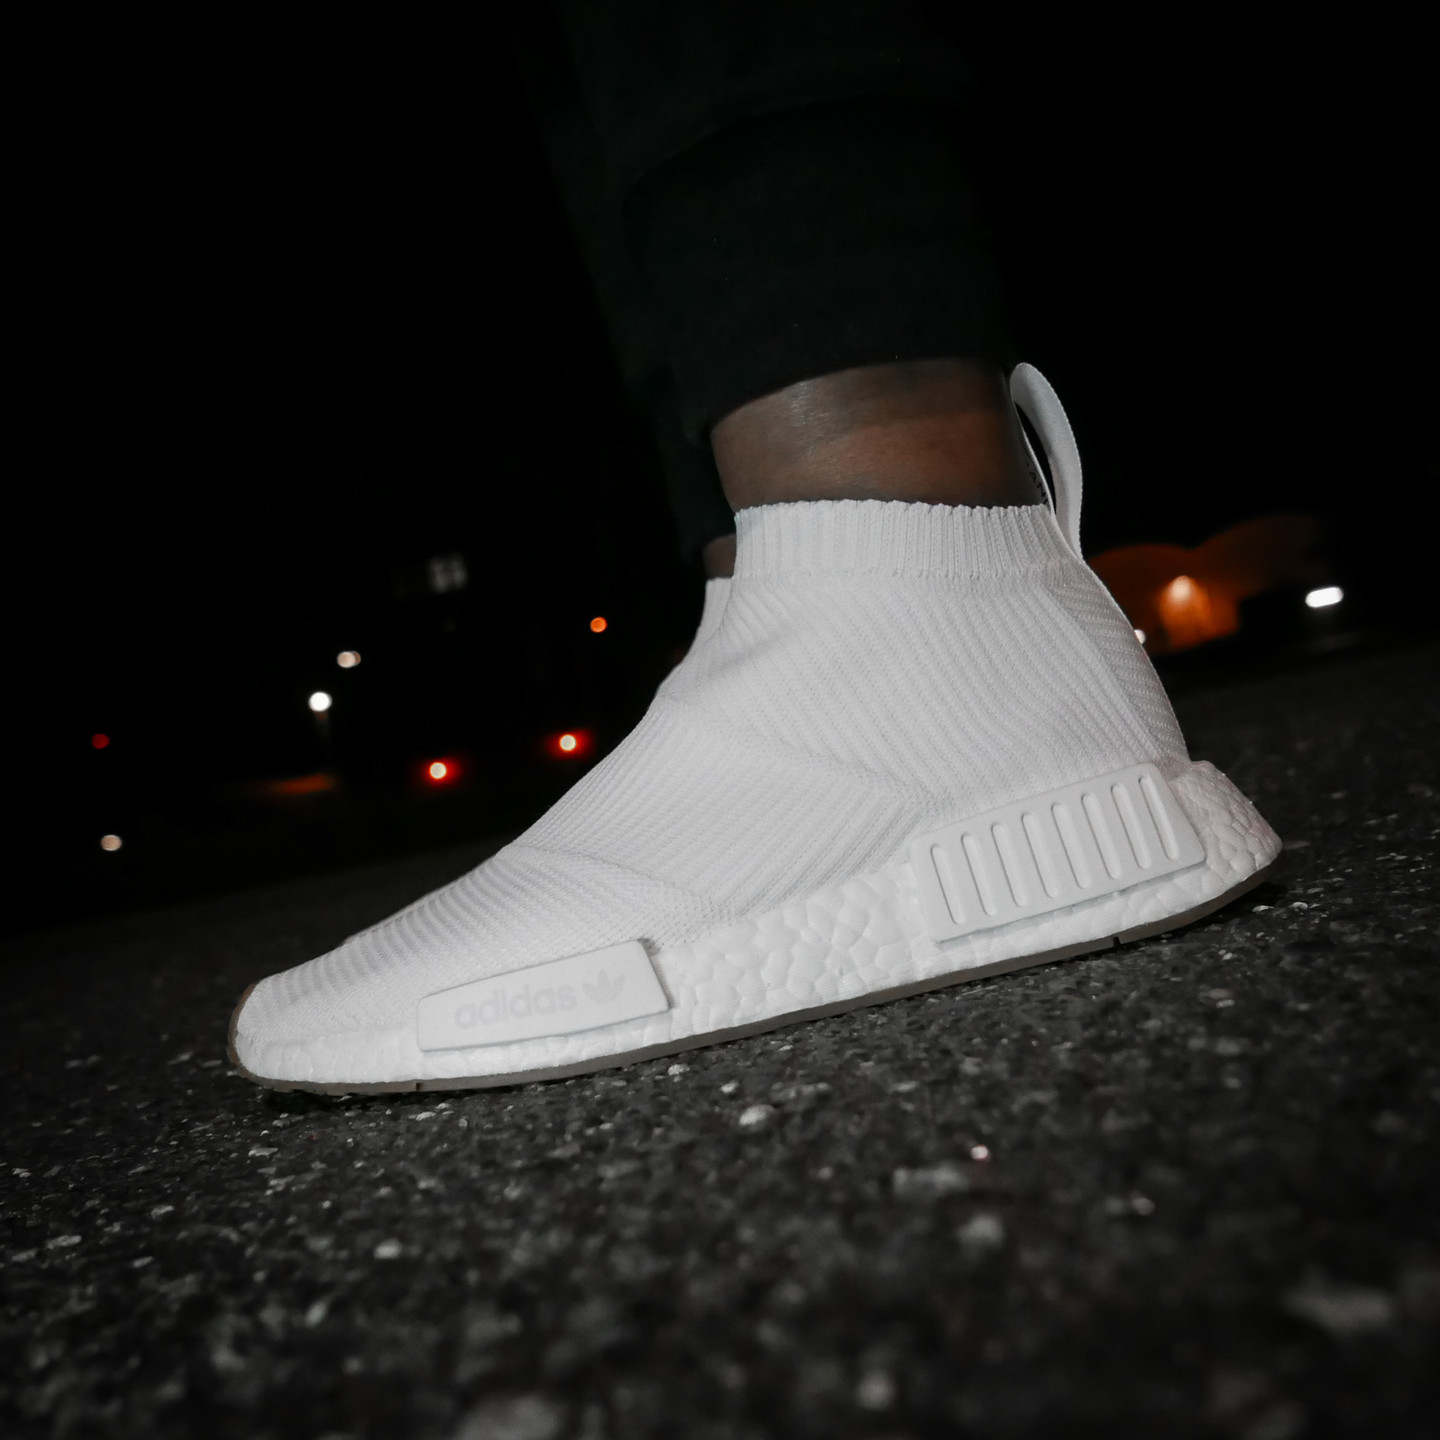 Adidas NMD CS1 City Sock Boost Primeknit Running White / Gum BA7208-44.66